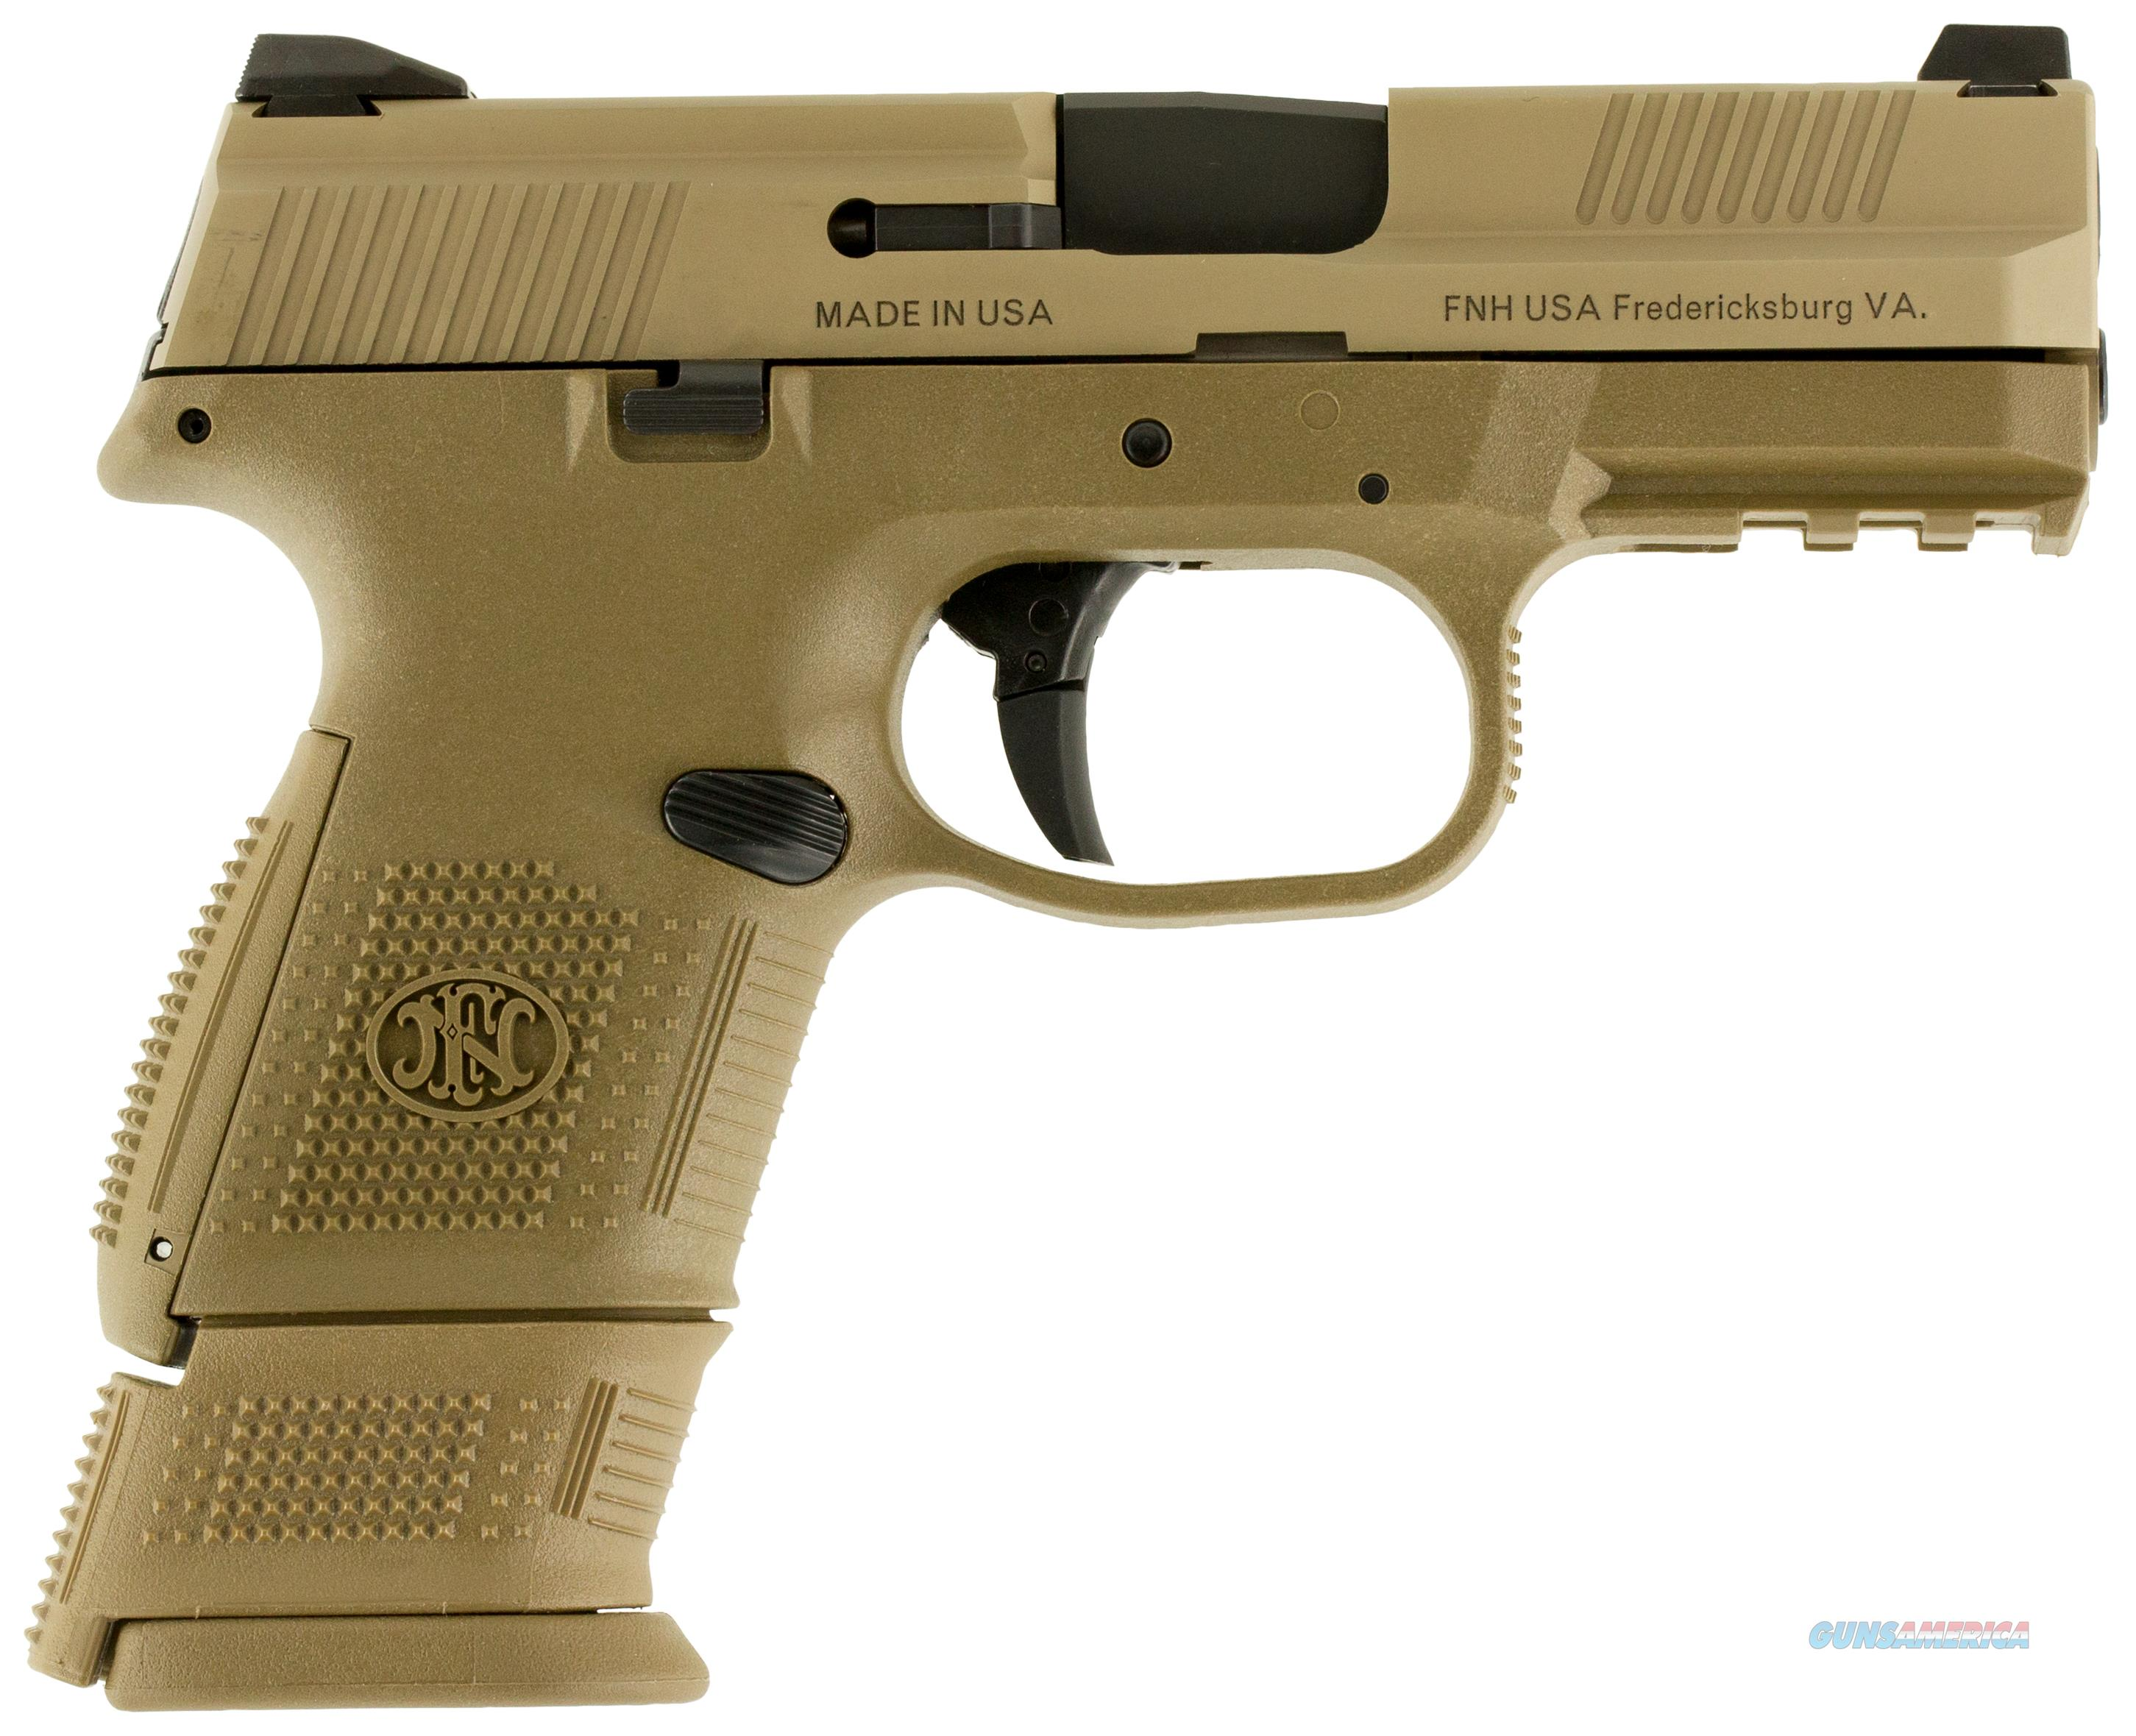 FNS-9c Compact 9mm FDE 12+1 and 17+1 Magazines   Guns > Pistols > FNH - Fabrique Nationale (FN) Pistols > FNS